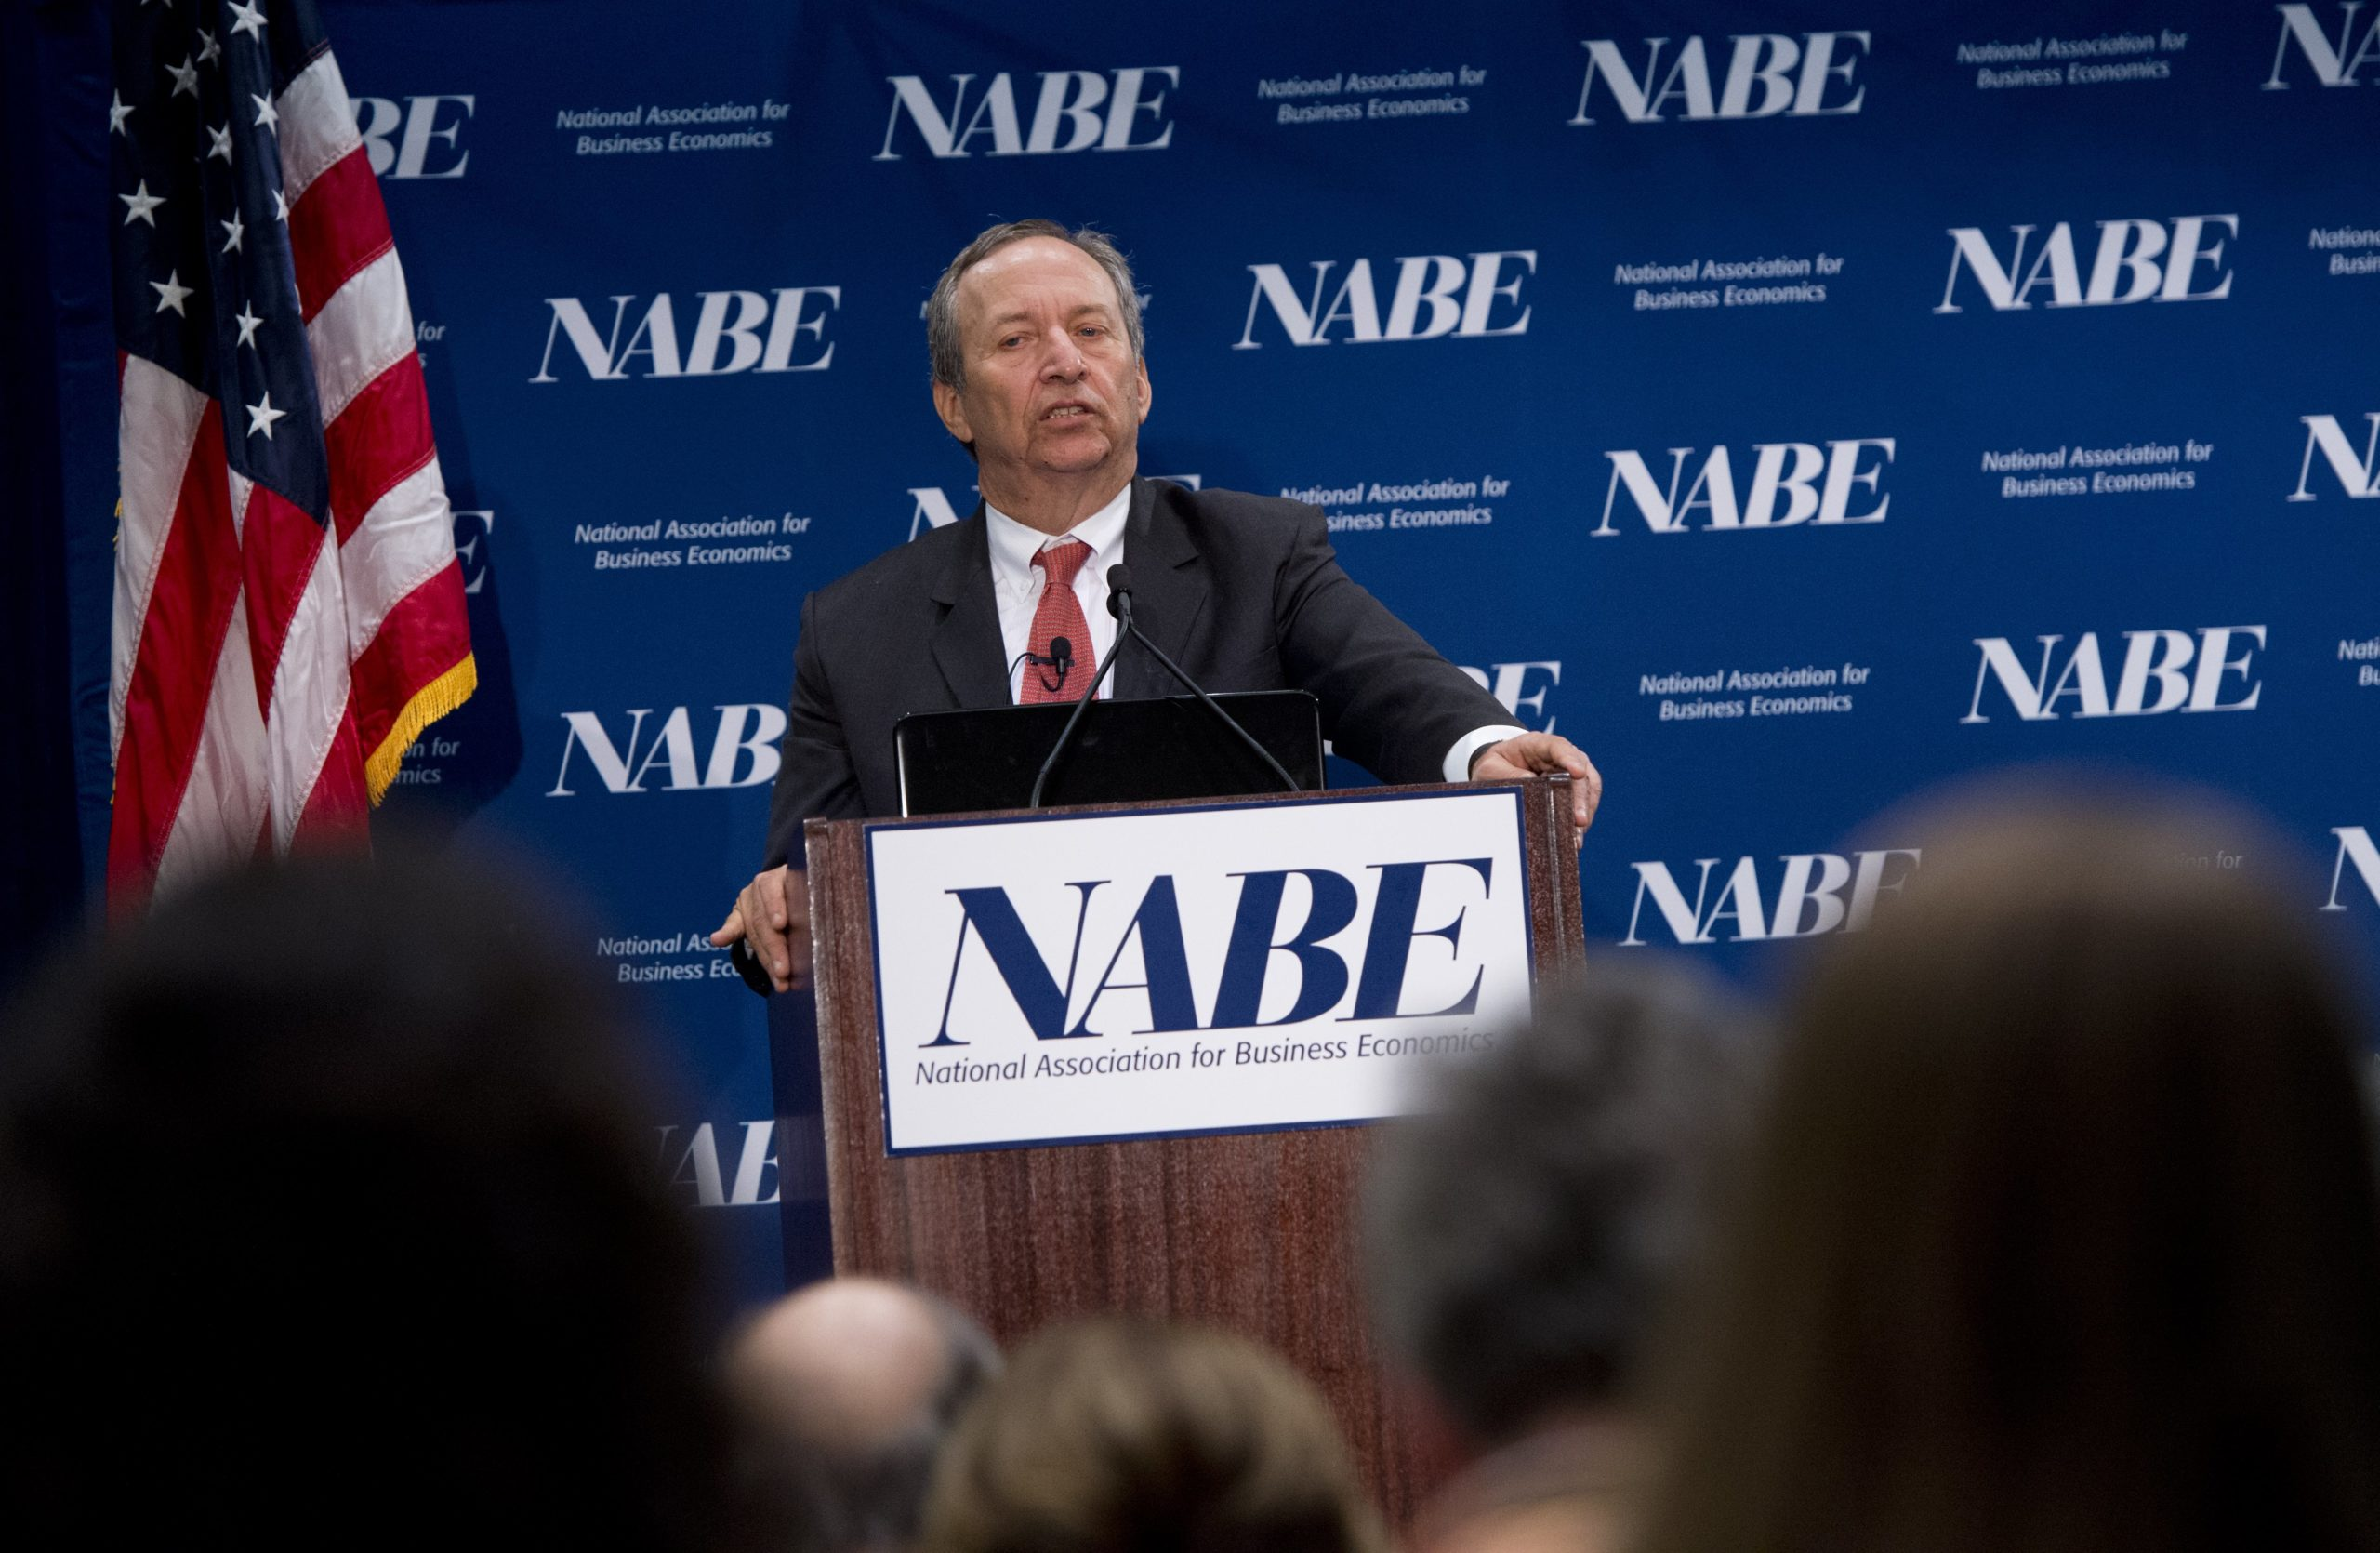 Former Treasury Secretary Larry Summers speaks at the 2014 Economic Policy Conference hosted by the National Association for Business Economics in Arlington, Virginia. (Saul Loeb/AFP via Getty Images)